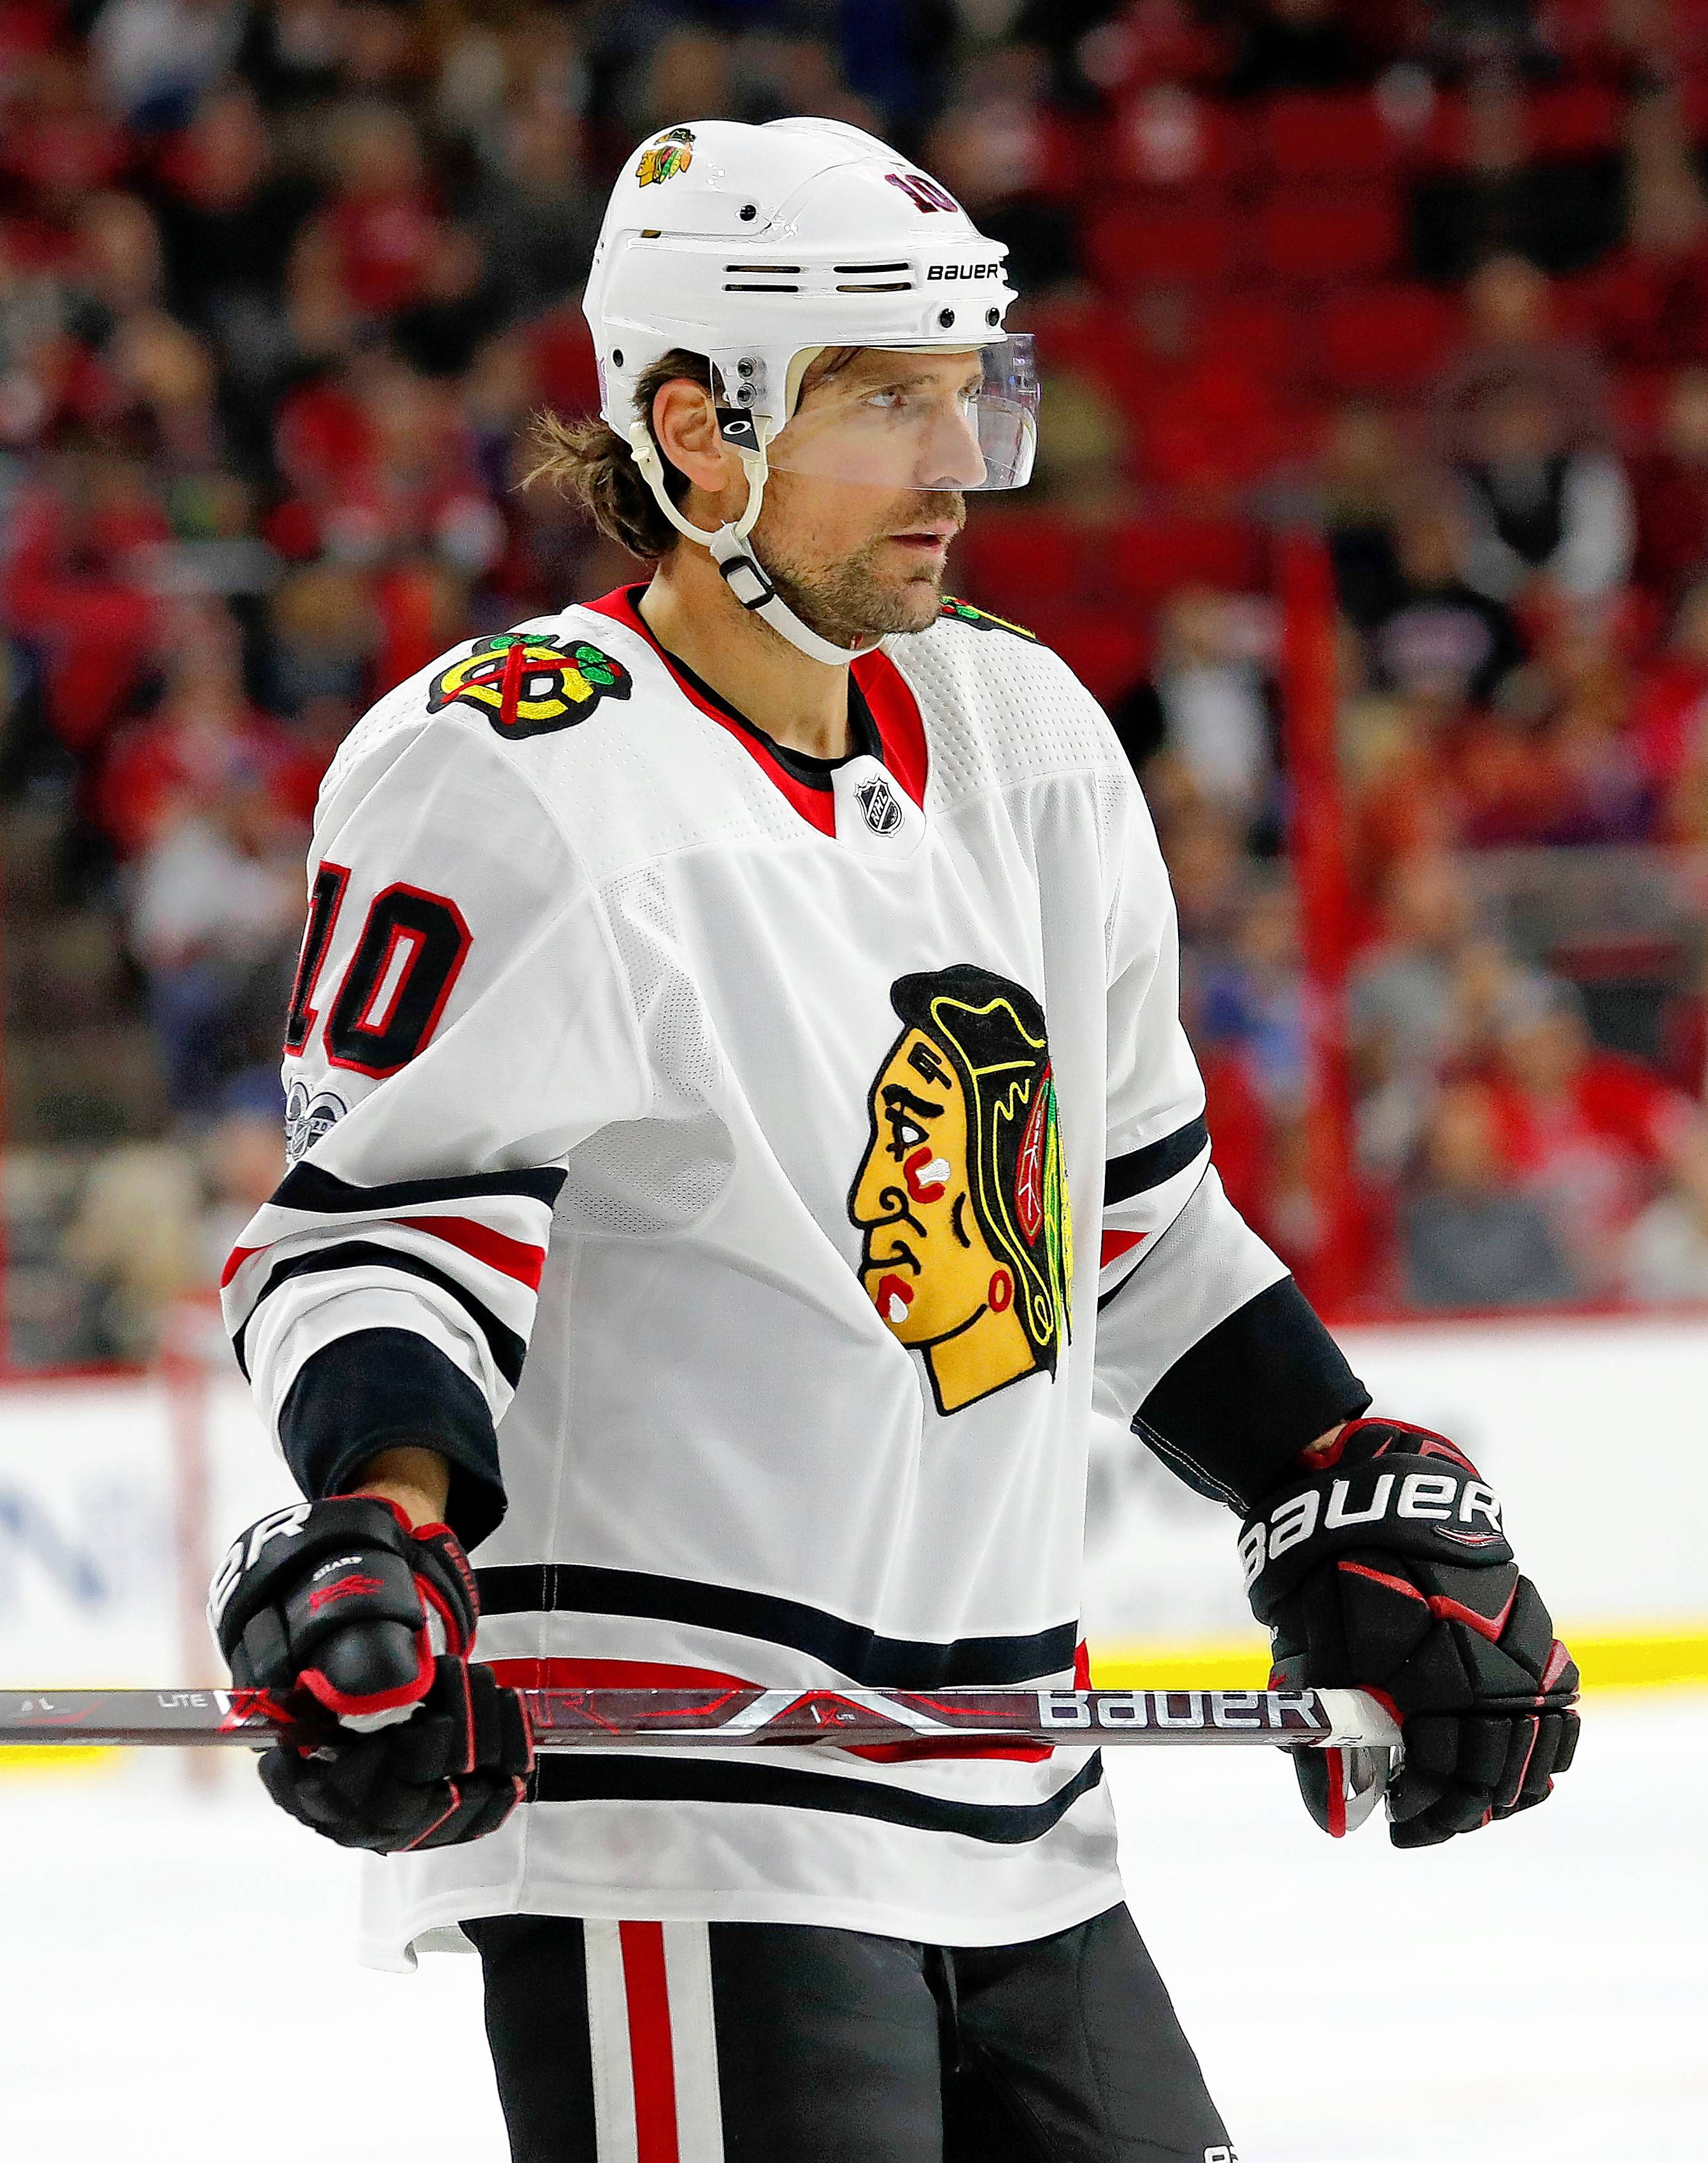 Chicago Blackhawks' Patrick Sharp (10) waits for the face off during the first period of an NHL hockey game against the Carolina Hurricanes, Saturday, Nov. 11, 2017, in Raleigh, N.C. (AP Photo/Karl B DeBlaker)